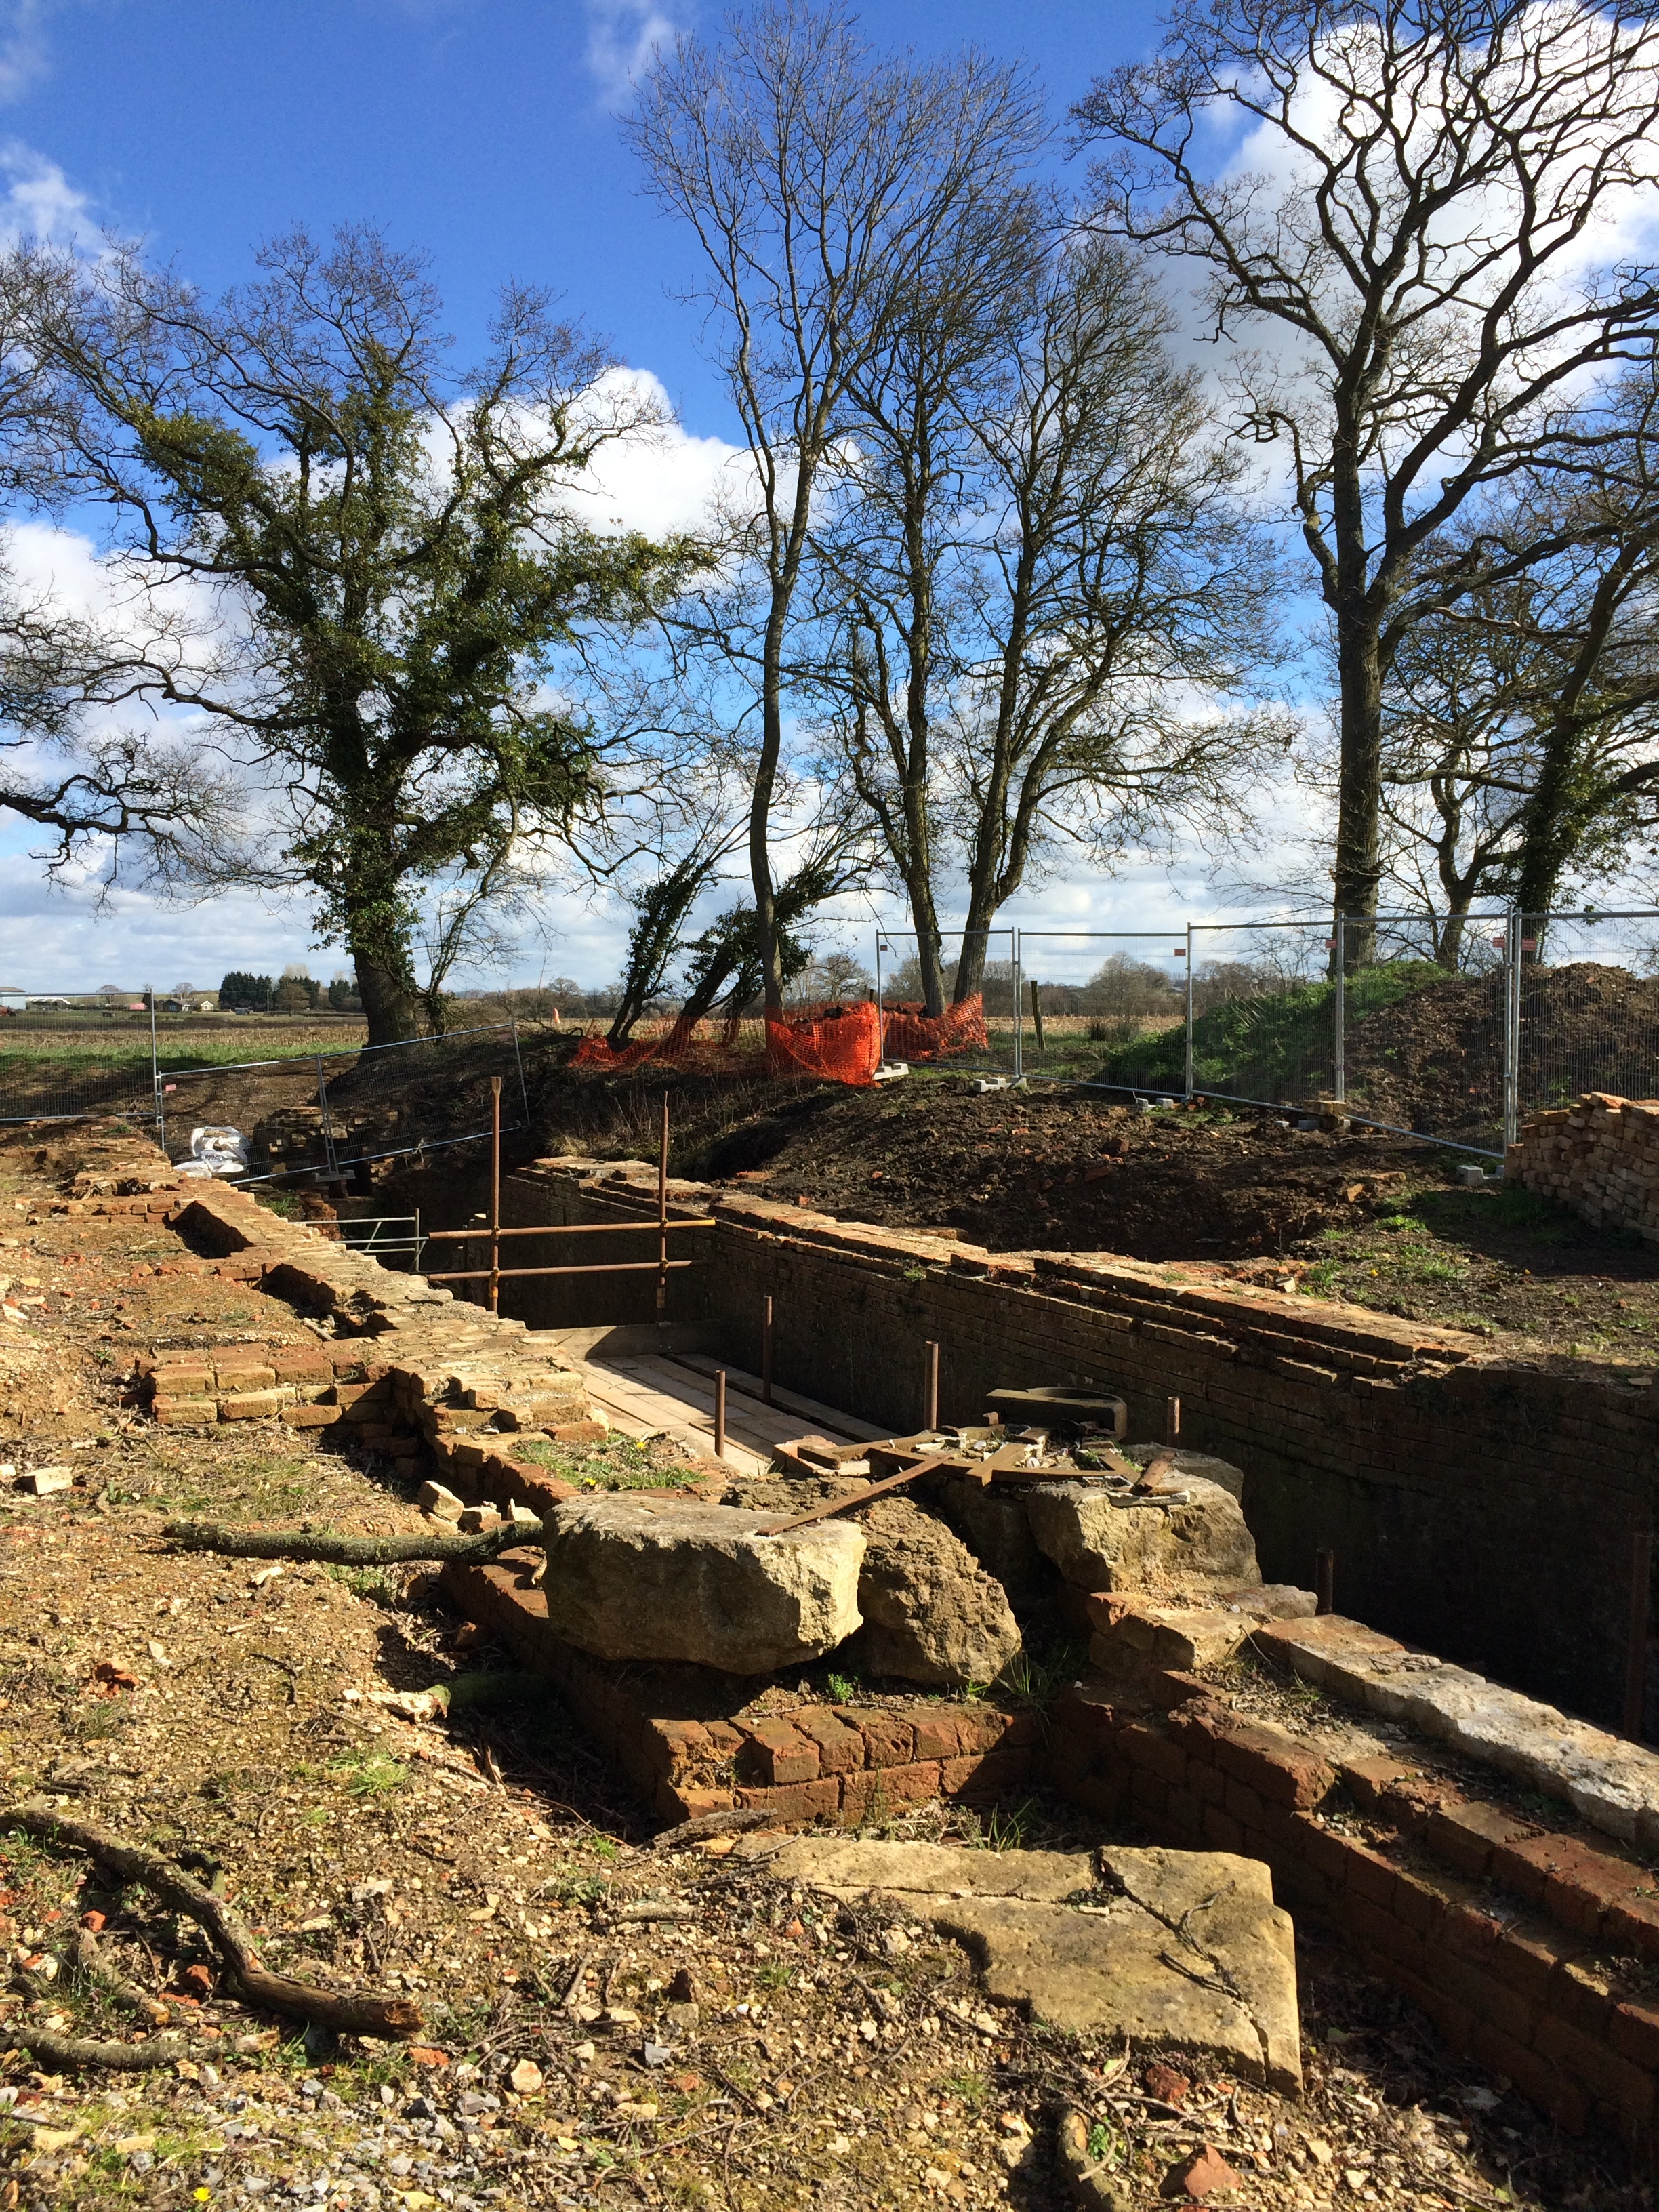 2016 06 14 Wilts and Berks Canal Pewsham lock restoration 2